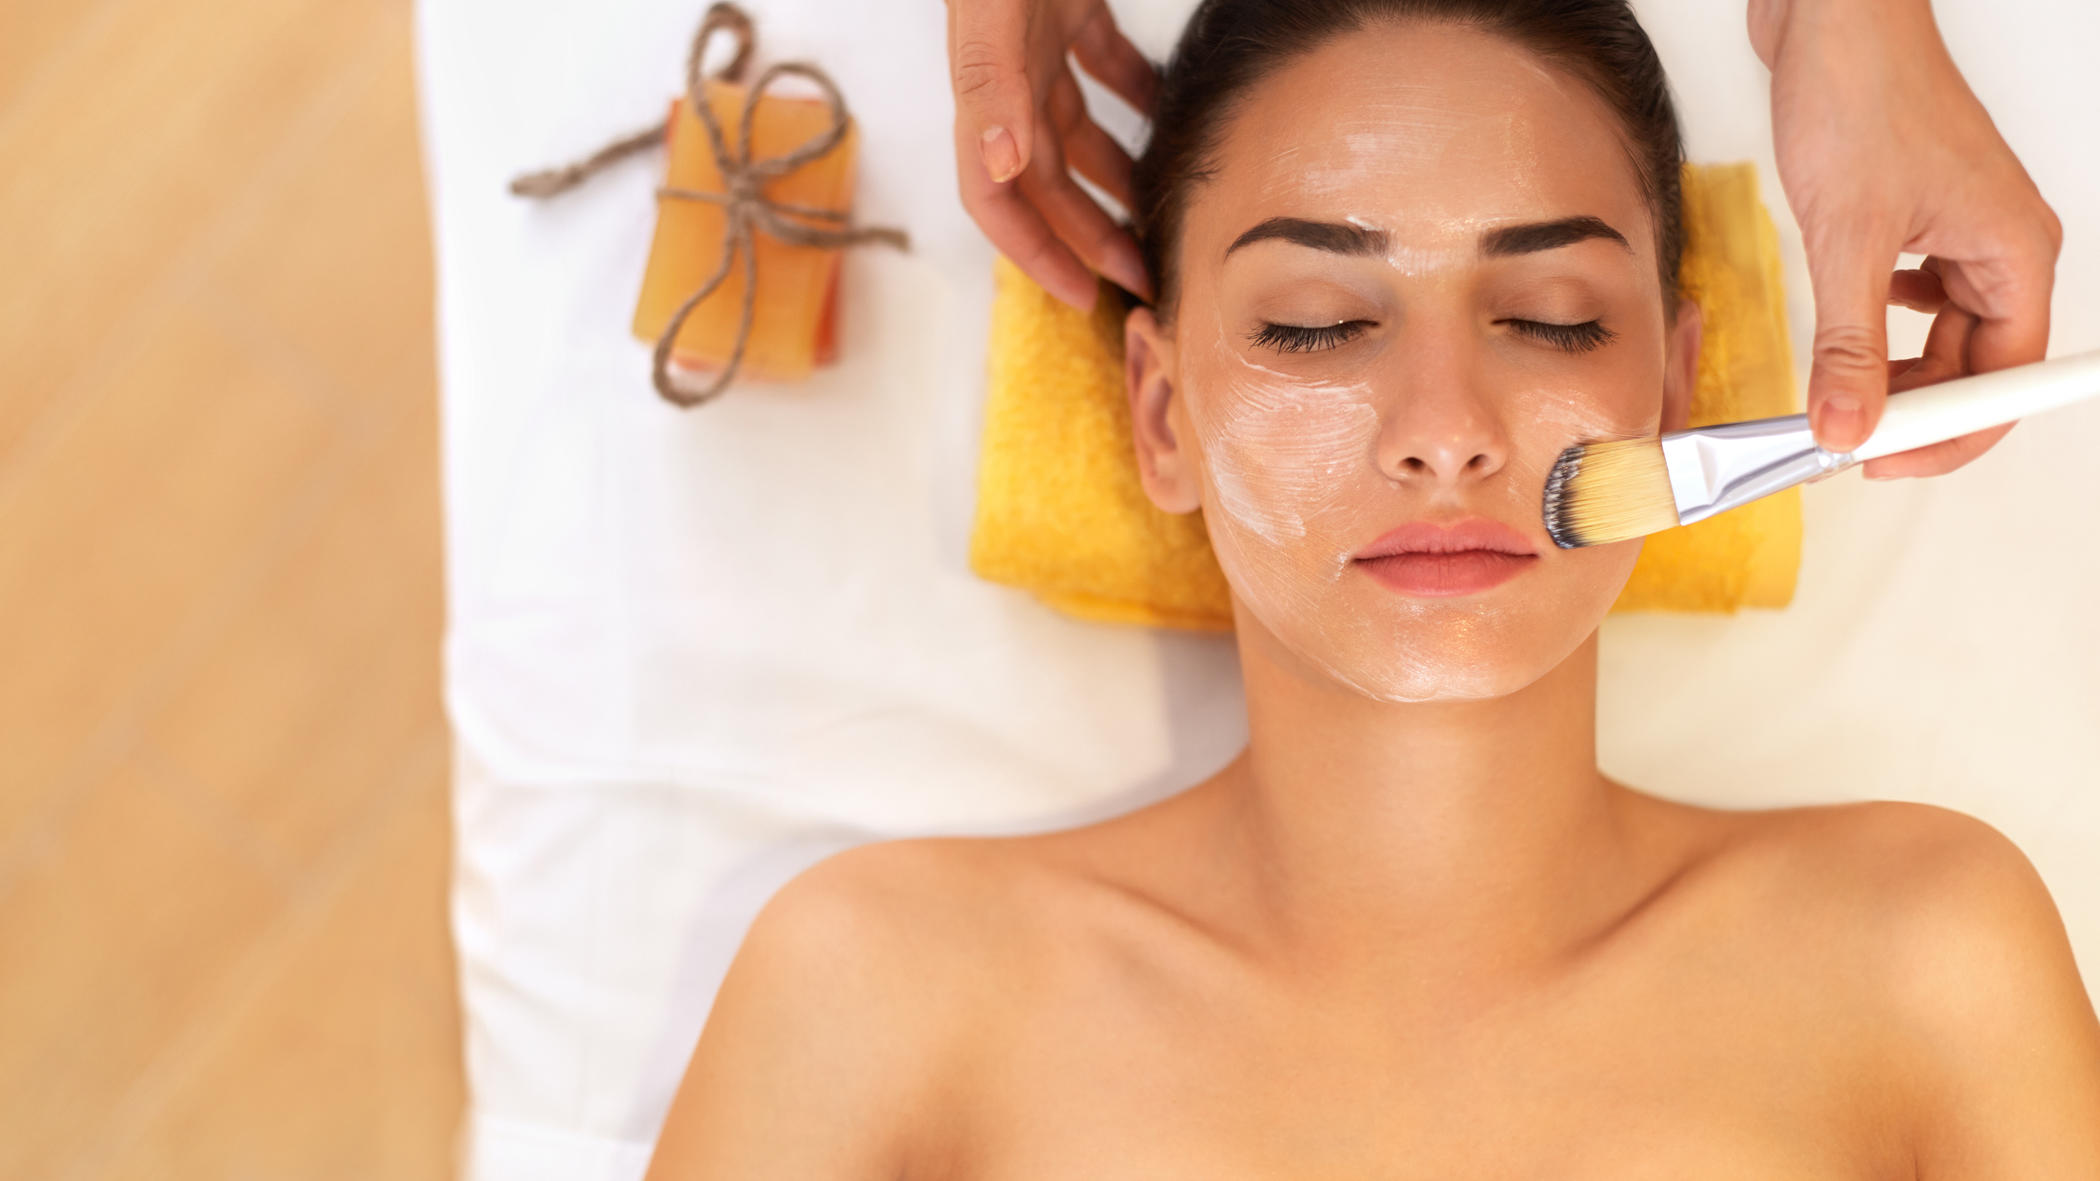 Beauty treatments sicilia Naxos Beach UNAHOTELS